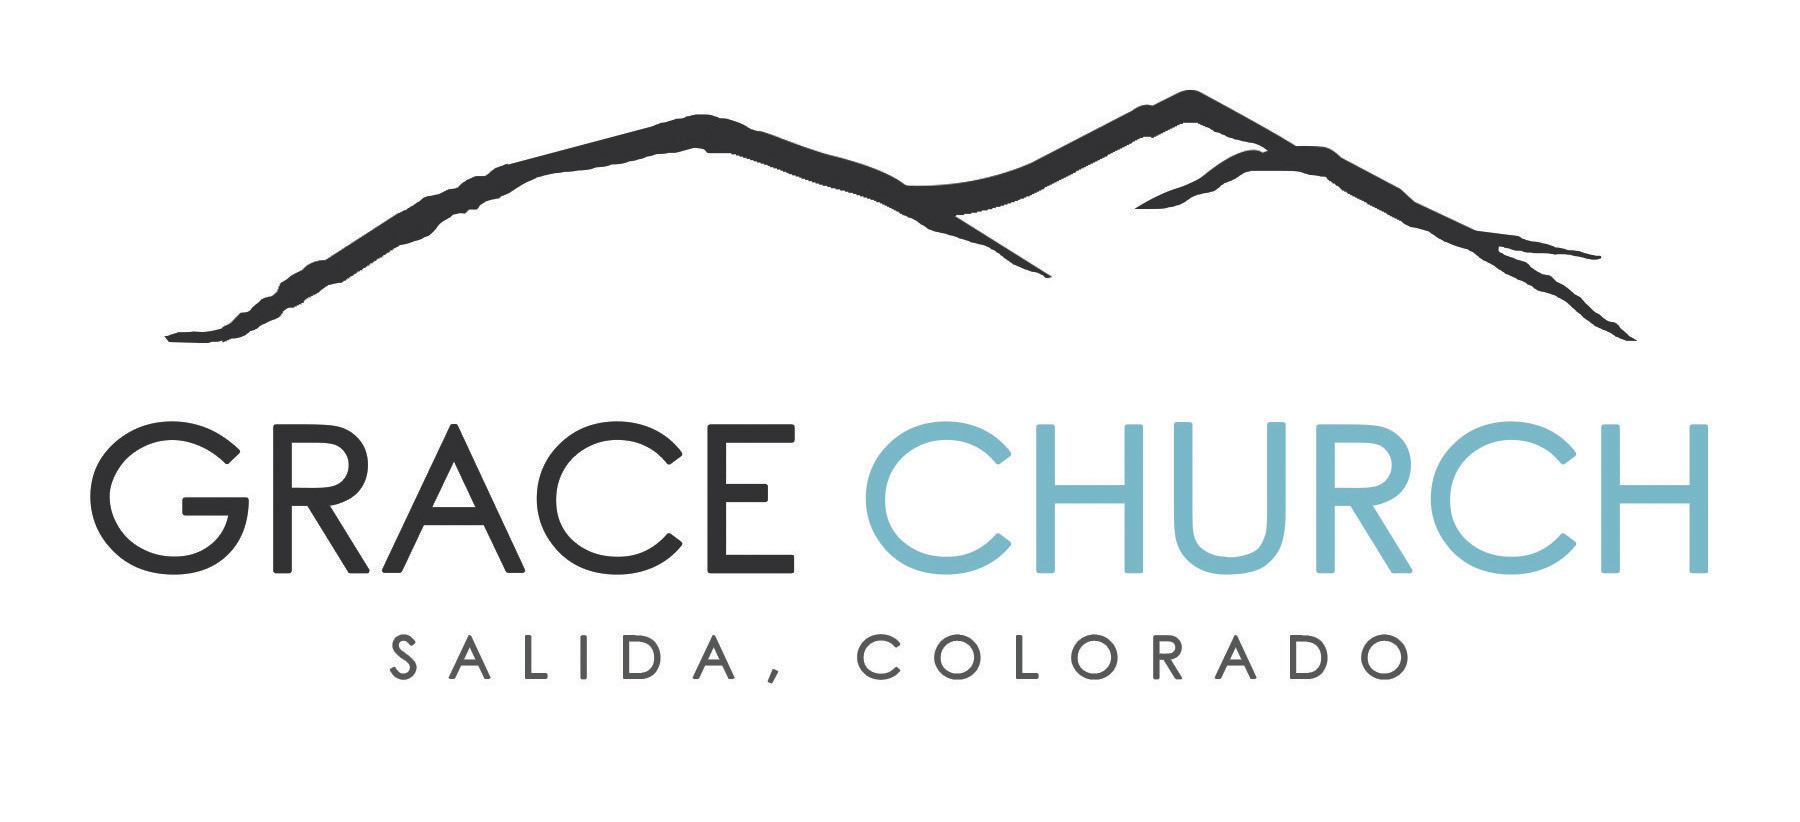 Grace Church Salida